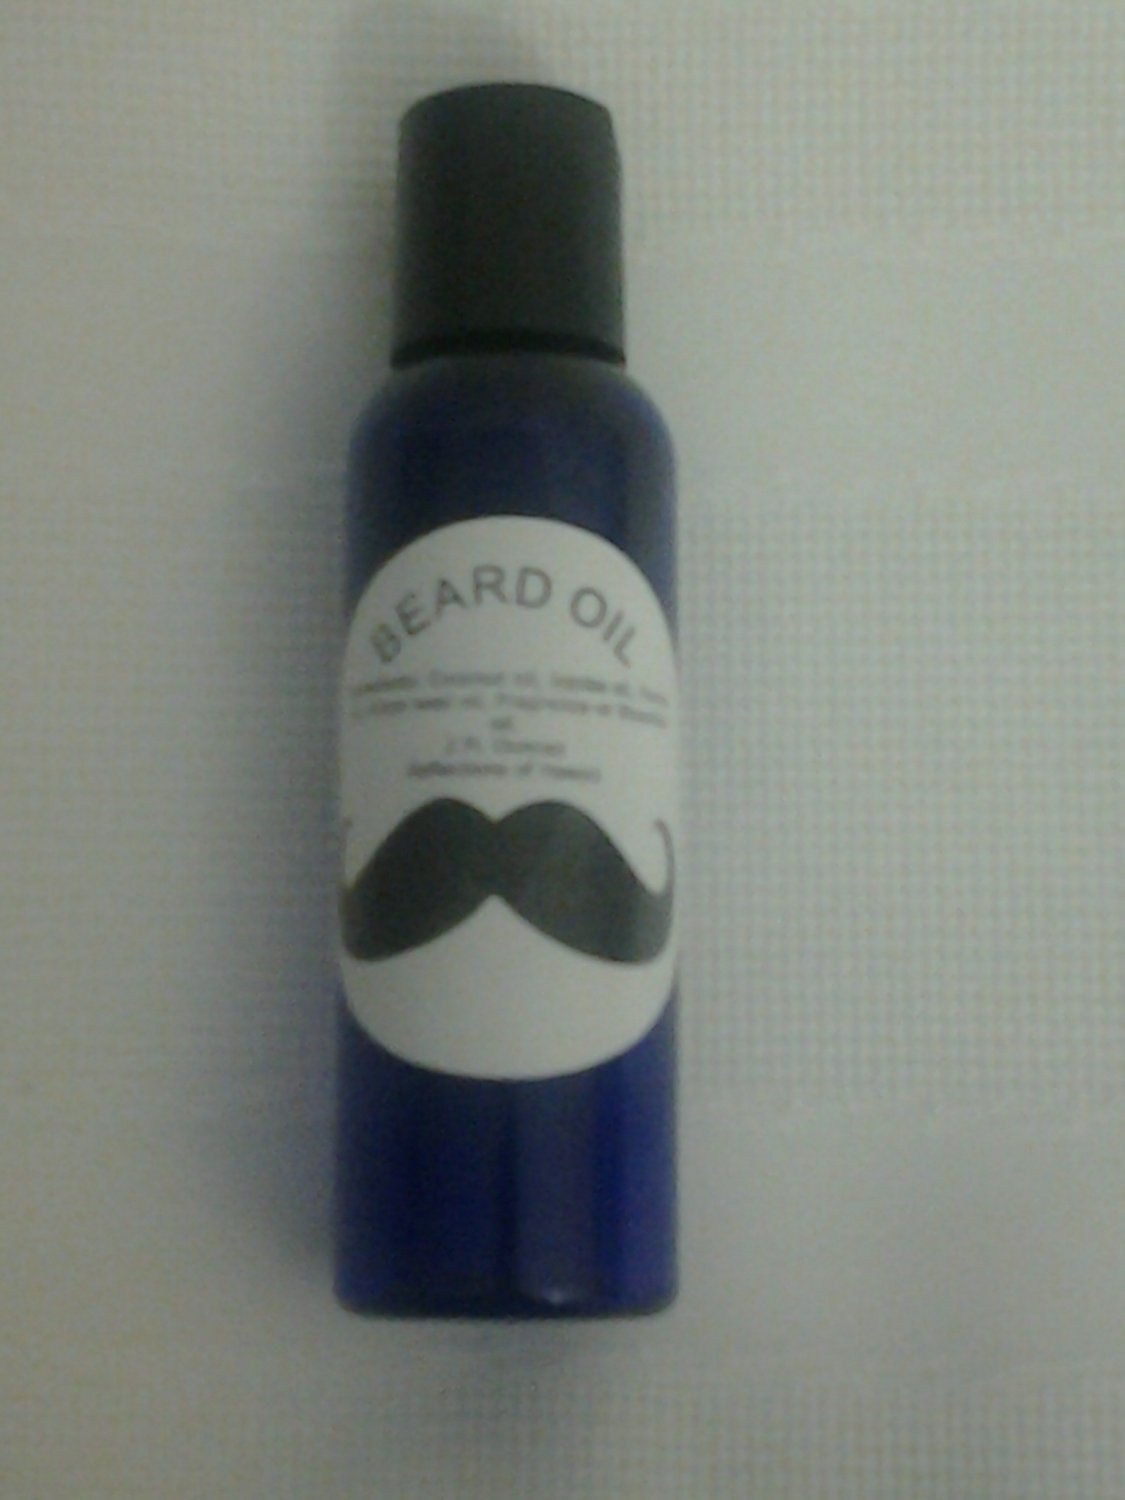 Beard - shave oil for men Dancing Waters 2 oz -